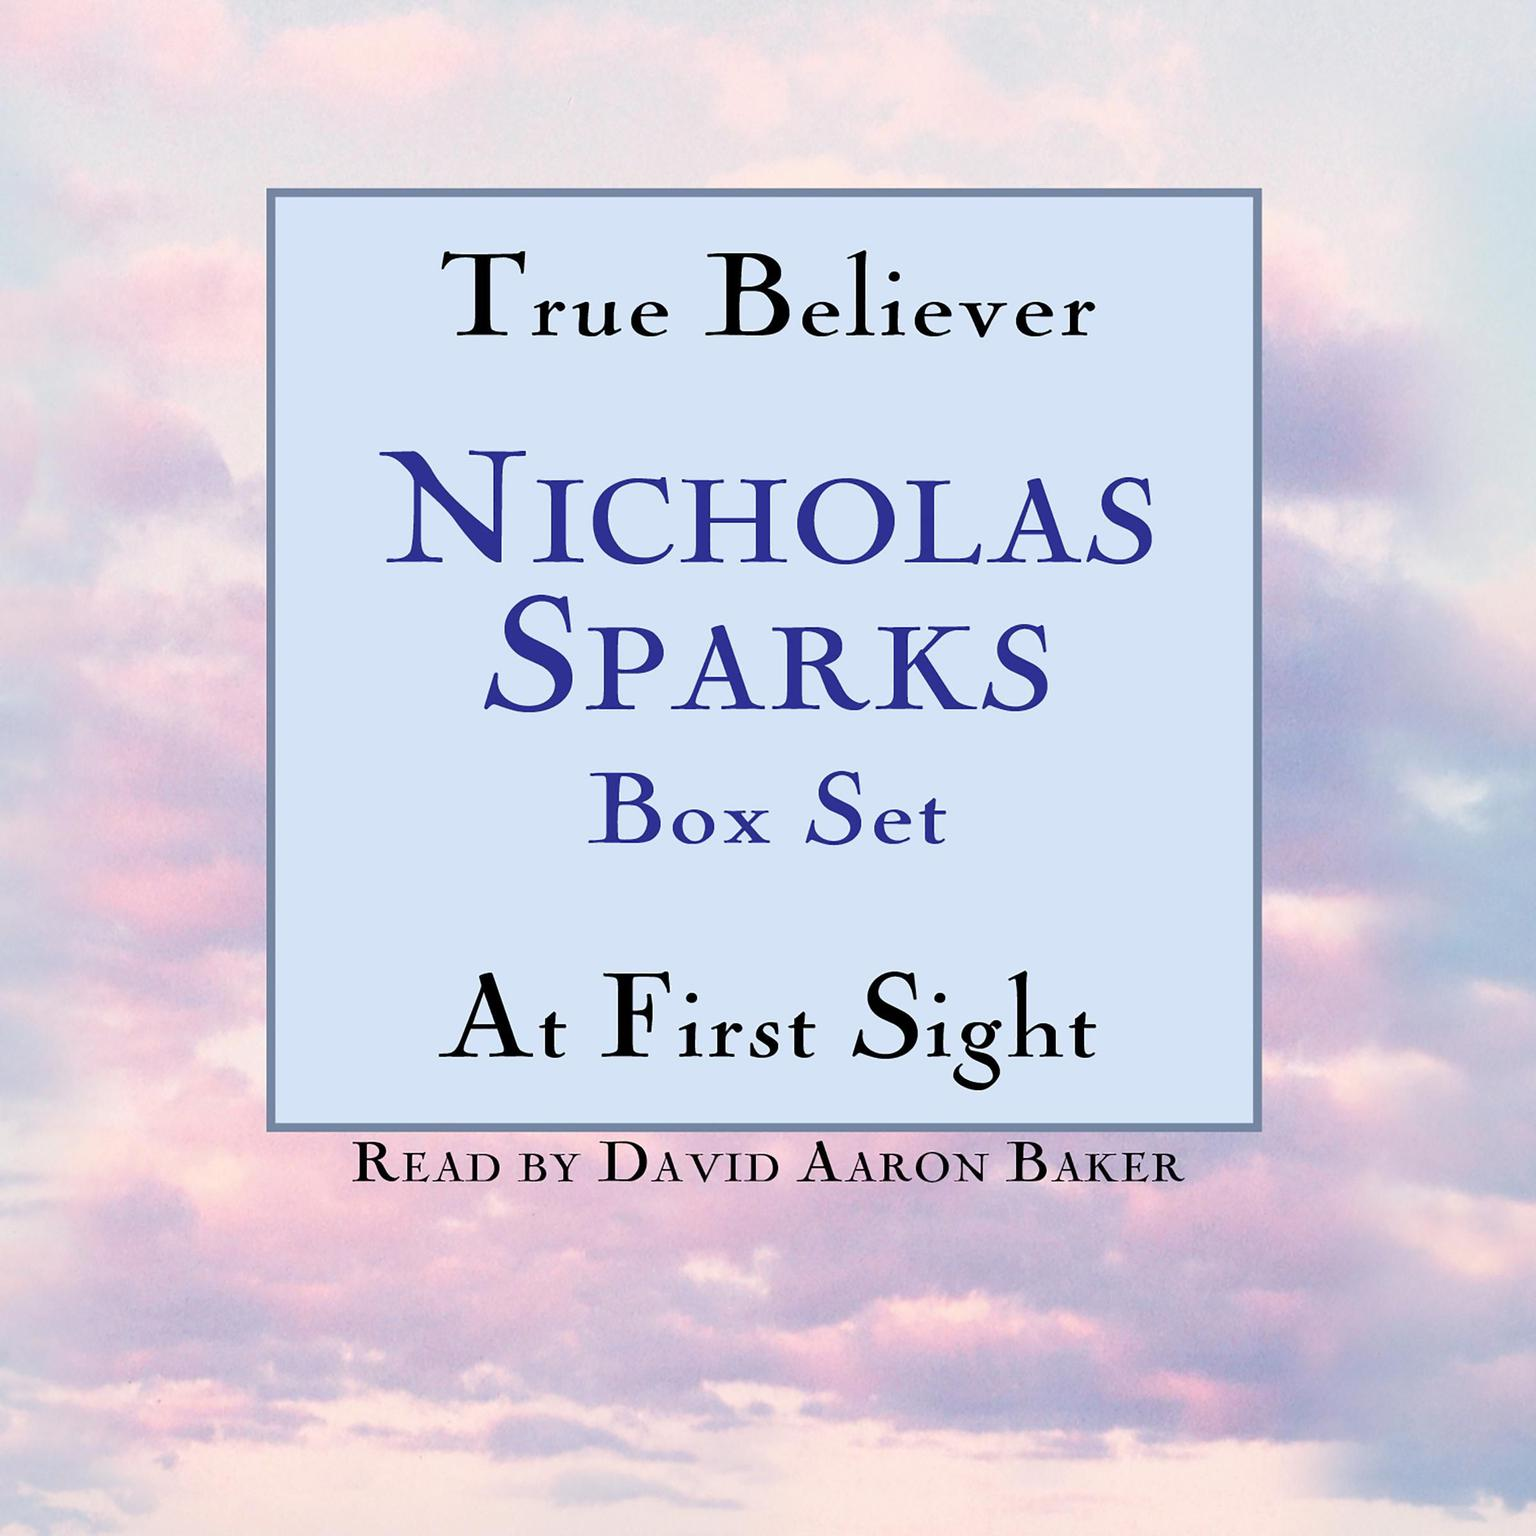 Printable True Believer / At First Sight Box Set: Featuring the Unabridged Recordings of True Believer and At First Sight Audiobook Cover Art